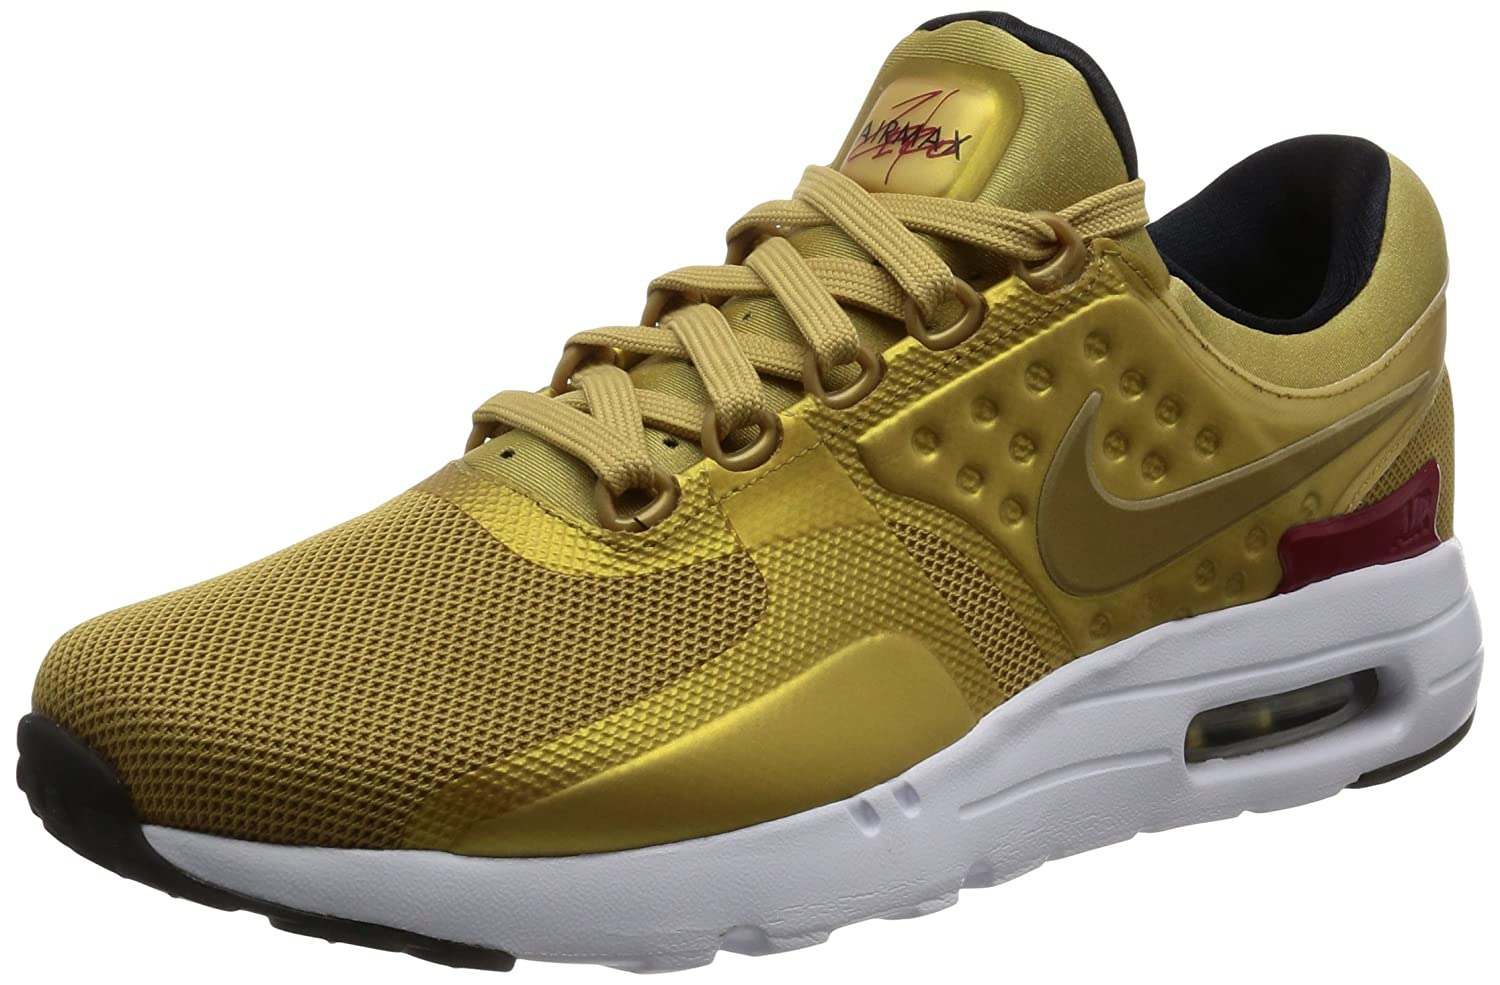 Nike AIR MAX Zero - 789695-700 - Size 9. 5 Gold  Buy Online at Low Prices  in India - Amazon.in 26a47c15b